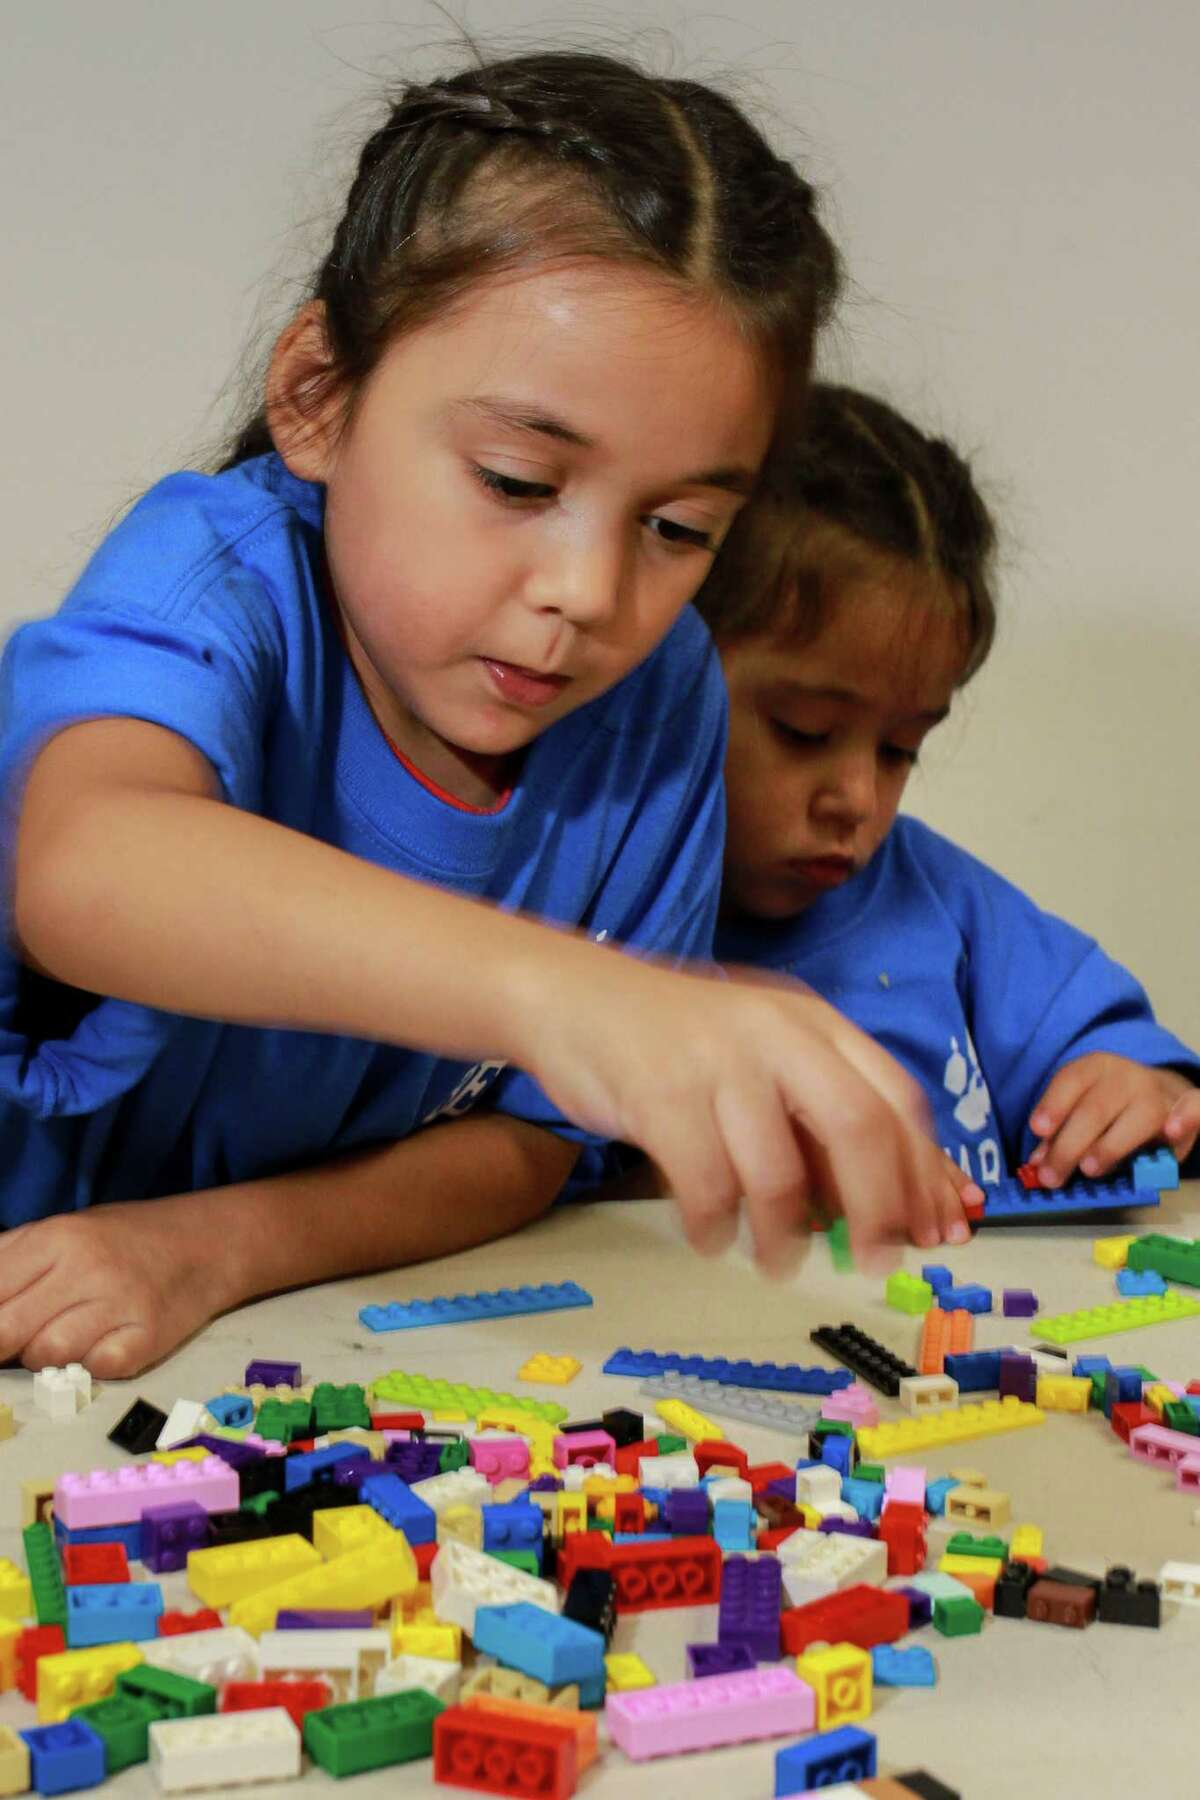 Sisters Emma Pruneda, 6, and Elaine Pruneda, 4, design and build a Lego boat as the learn about careers in STEM fields, part of the Comcast TechPak program. (For the Chronicle/Gary Fountain, October 7, 2017)